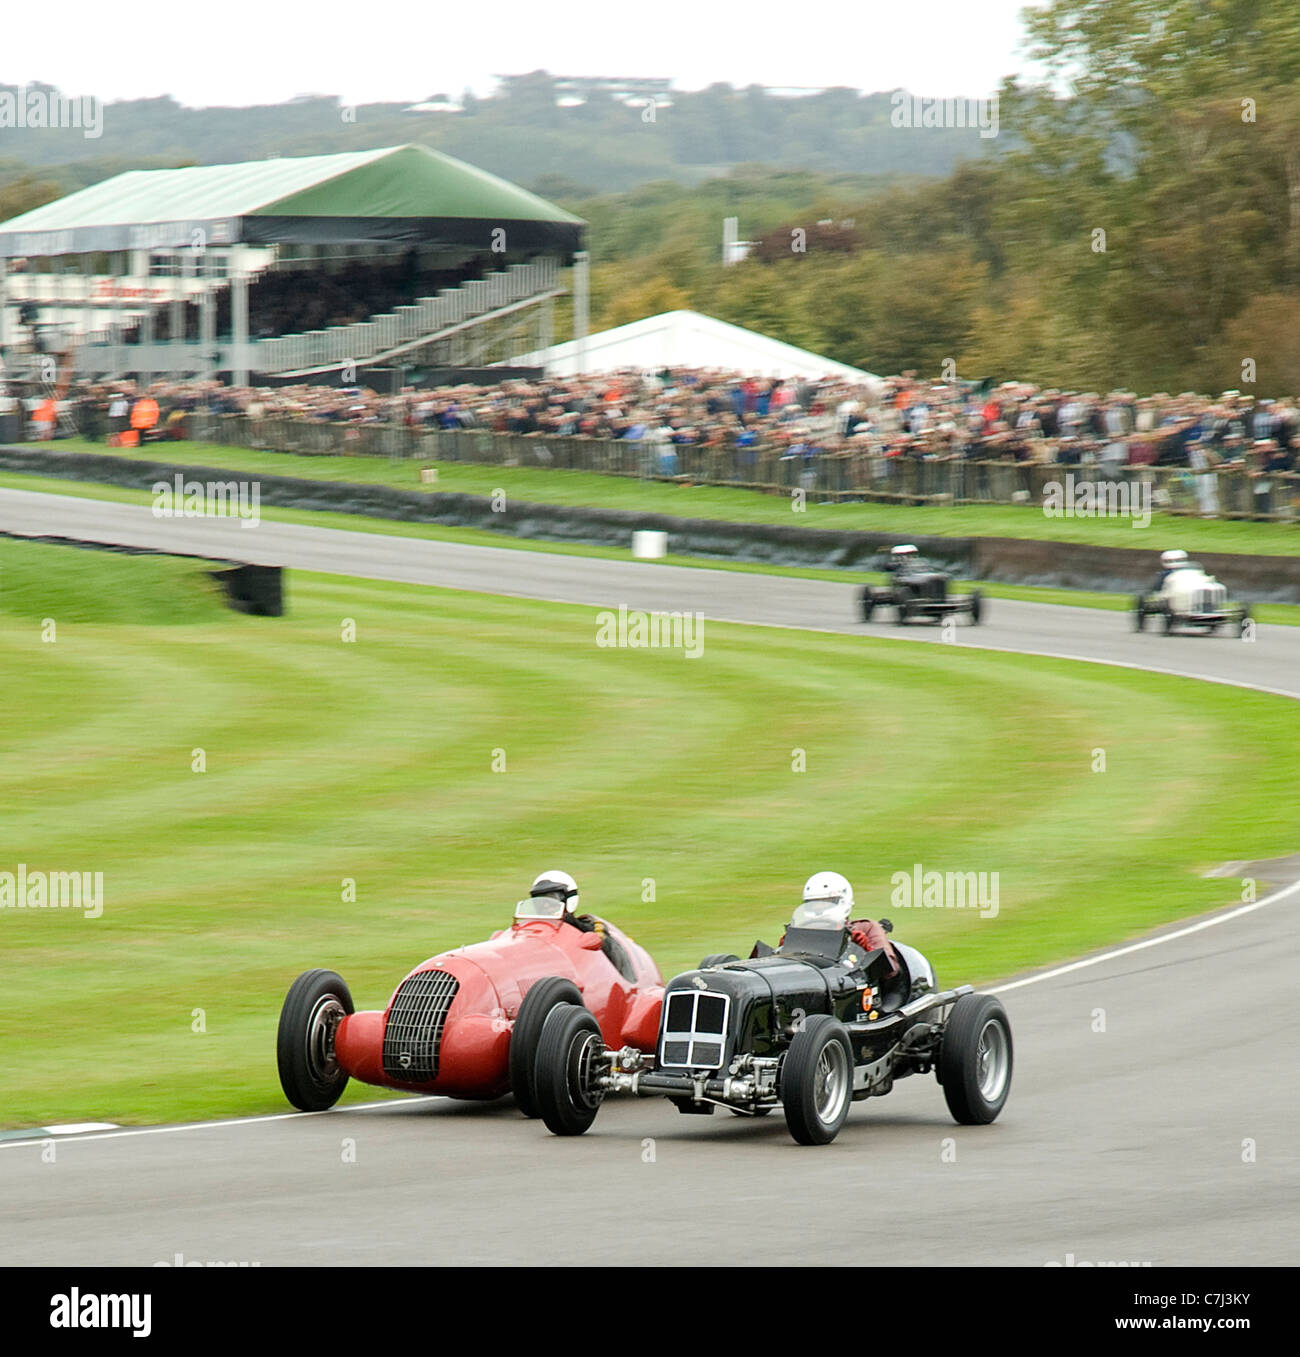 Goodwood Revival Meeting 2011. Goodwood Trophy Rennen, Hulbert ERA D Typ und Majzubs Alfa Romeo 308c gehen Rad an Stockbild